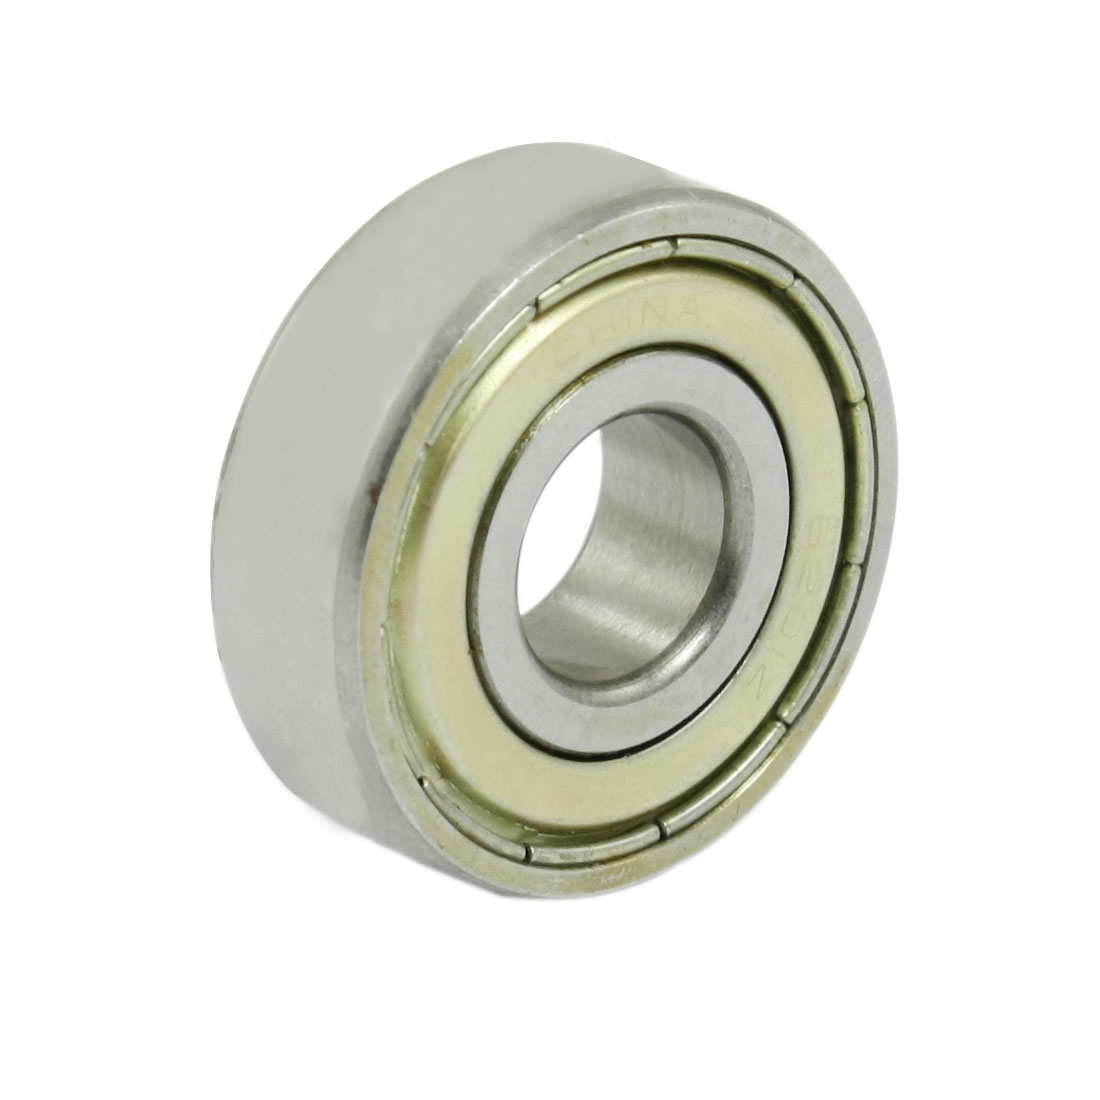 6201E 12mm x 32mm x 10mm Double Shielded Deep Groove Wheel Ball Bearing